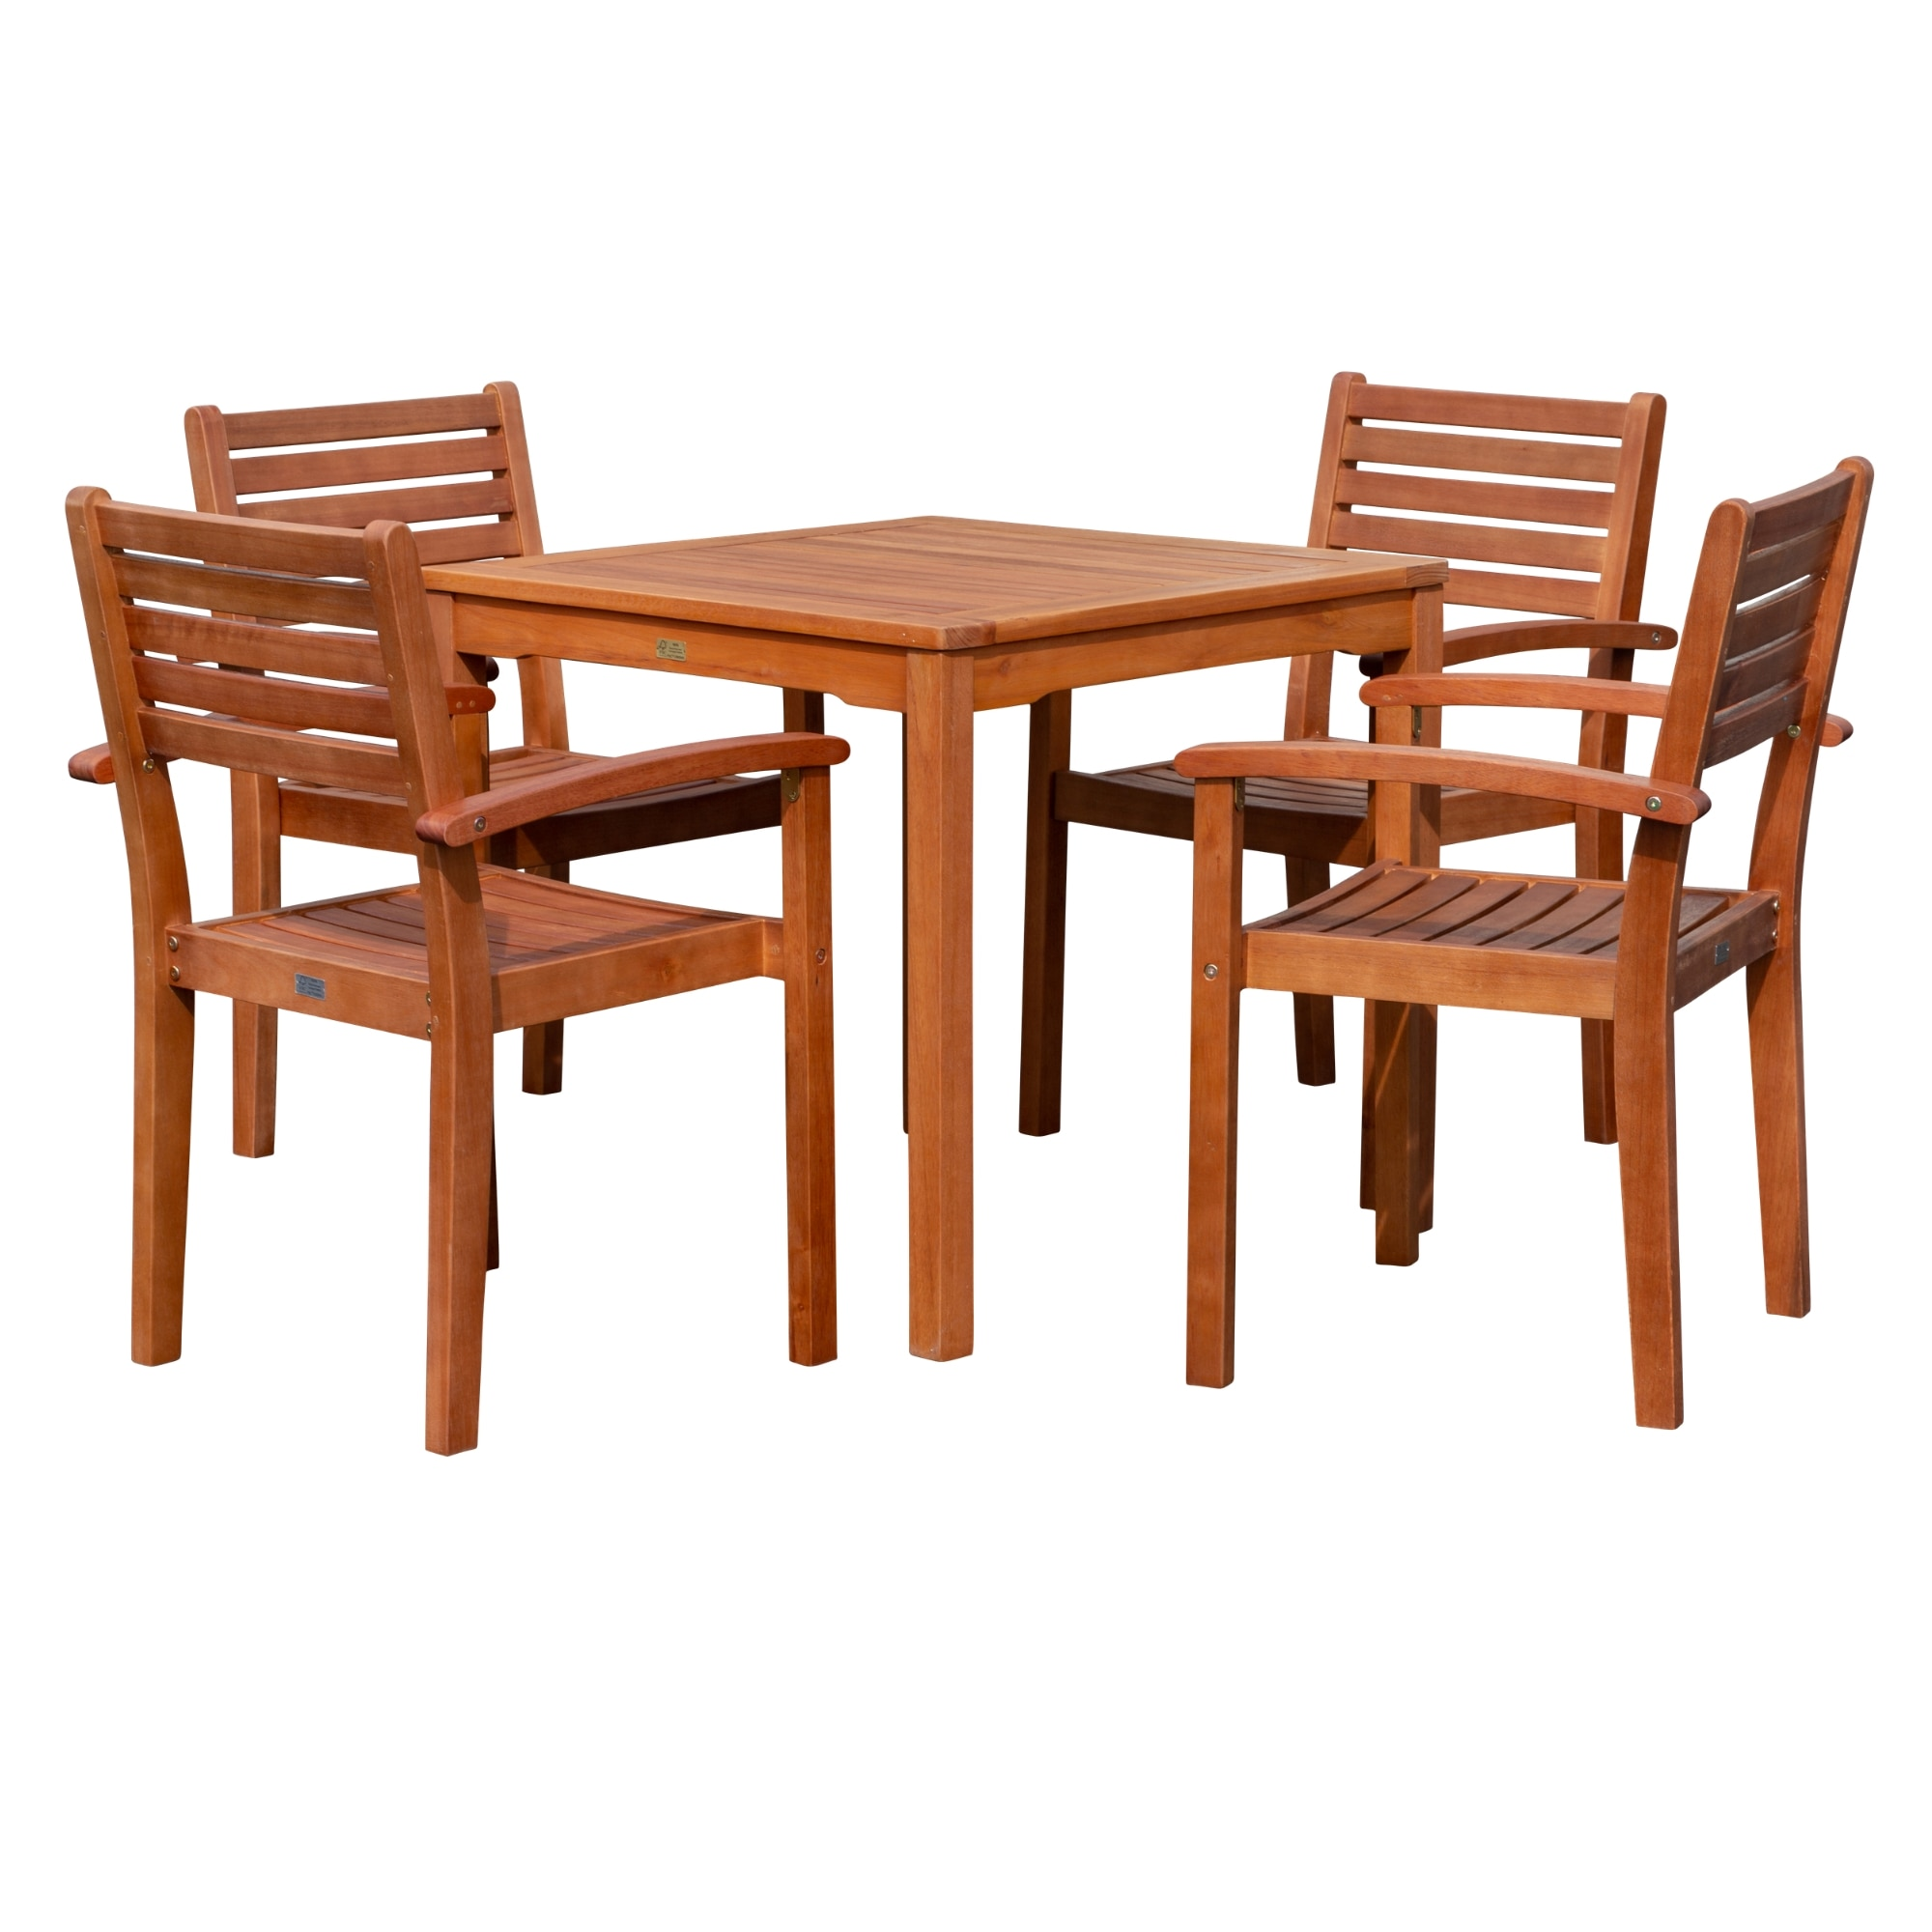 dty outdoor living leadville square dining set 5 piece eucalyptus patio furniture set with table and 4 stacking chairs natural oil finish